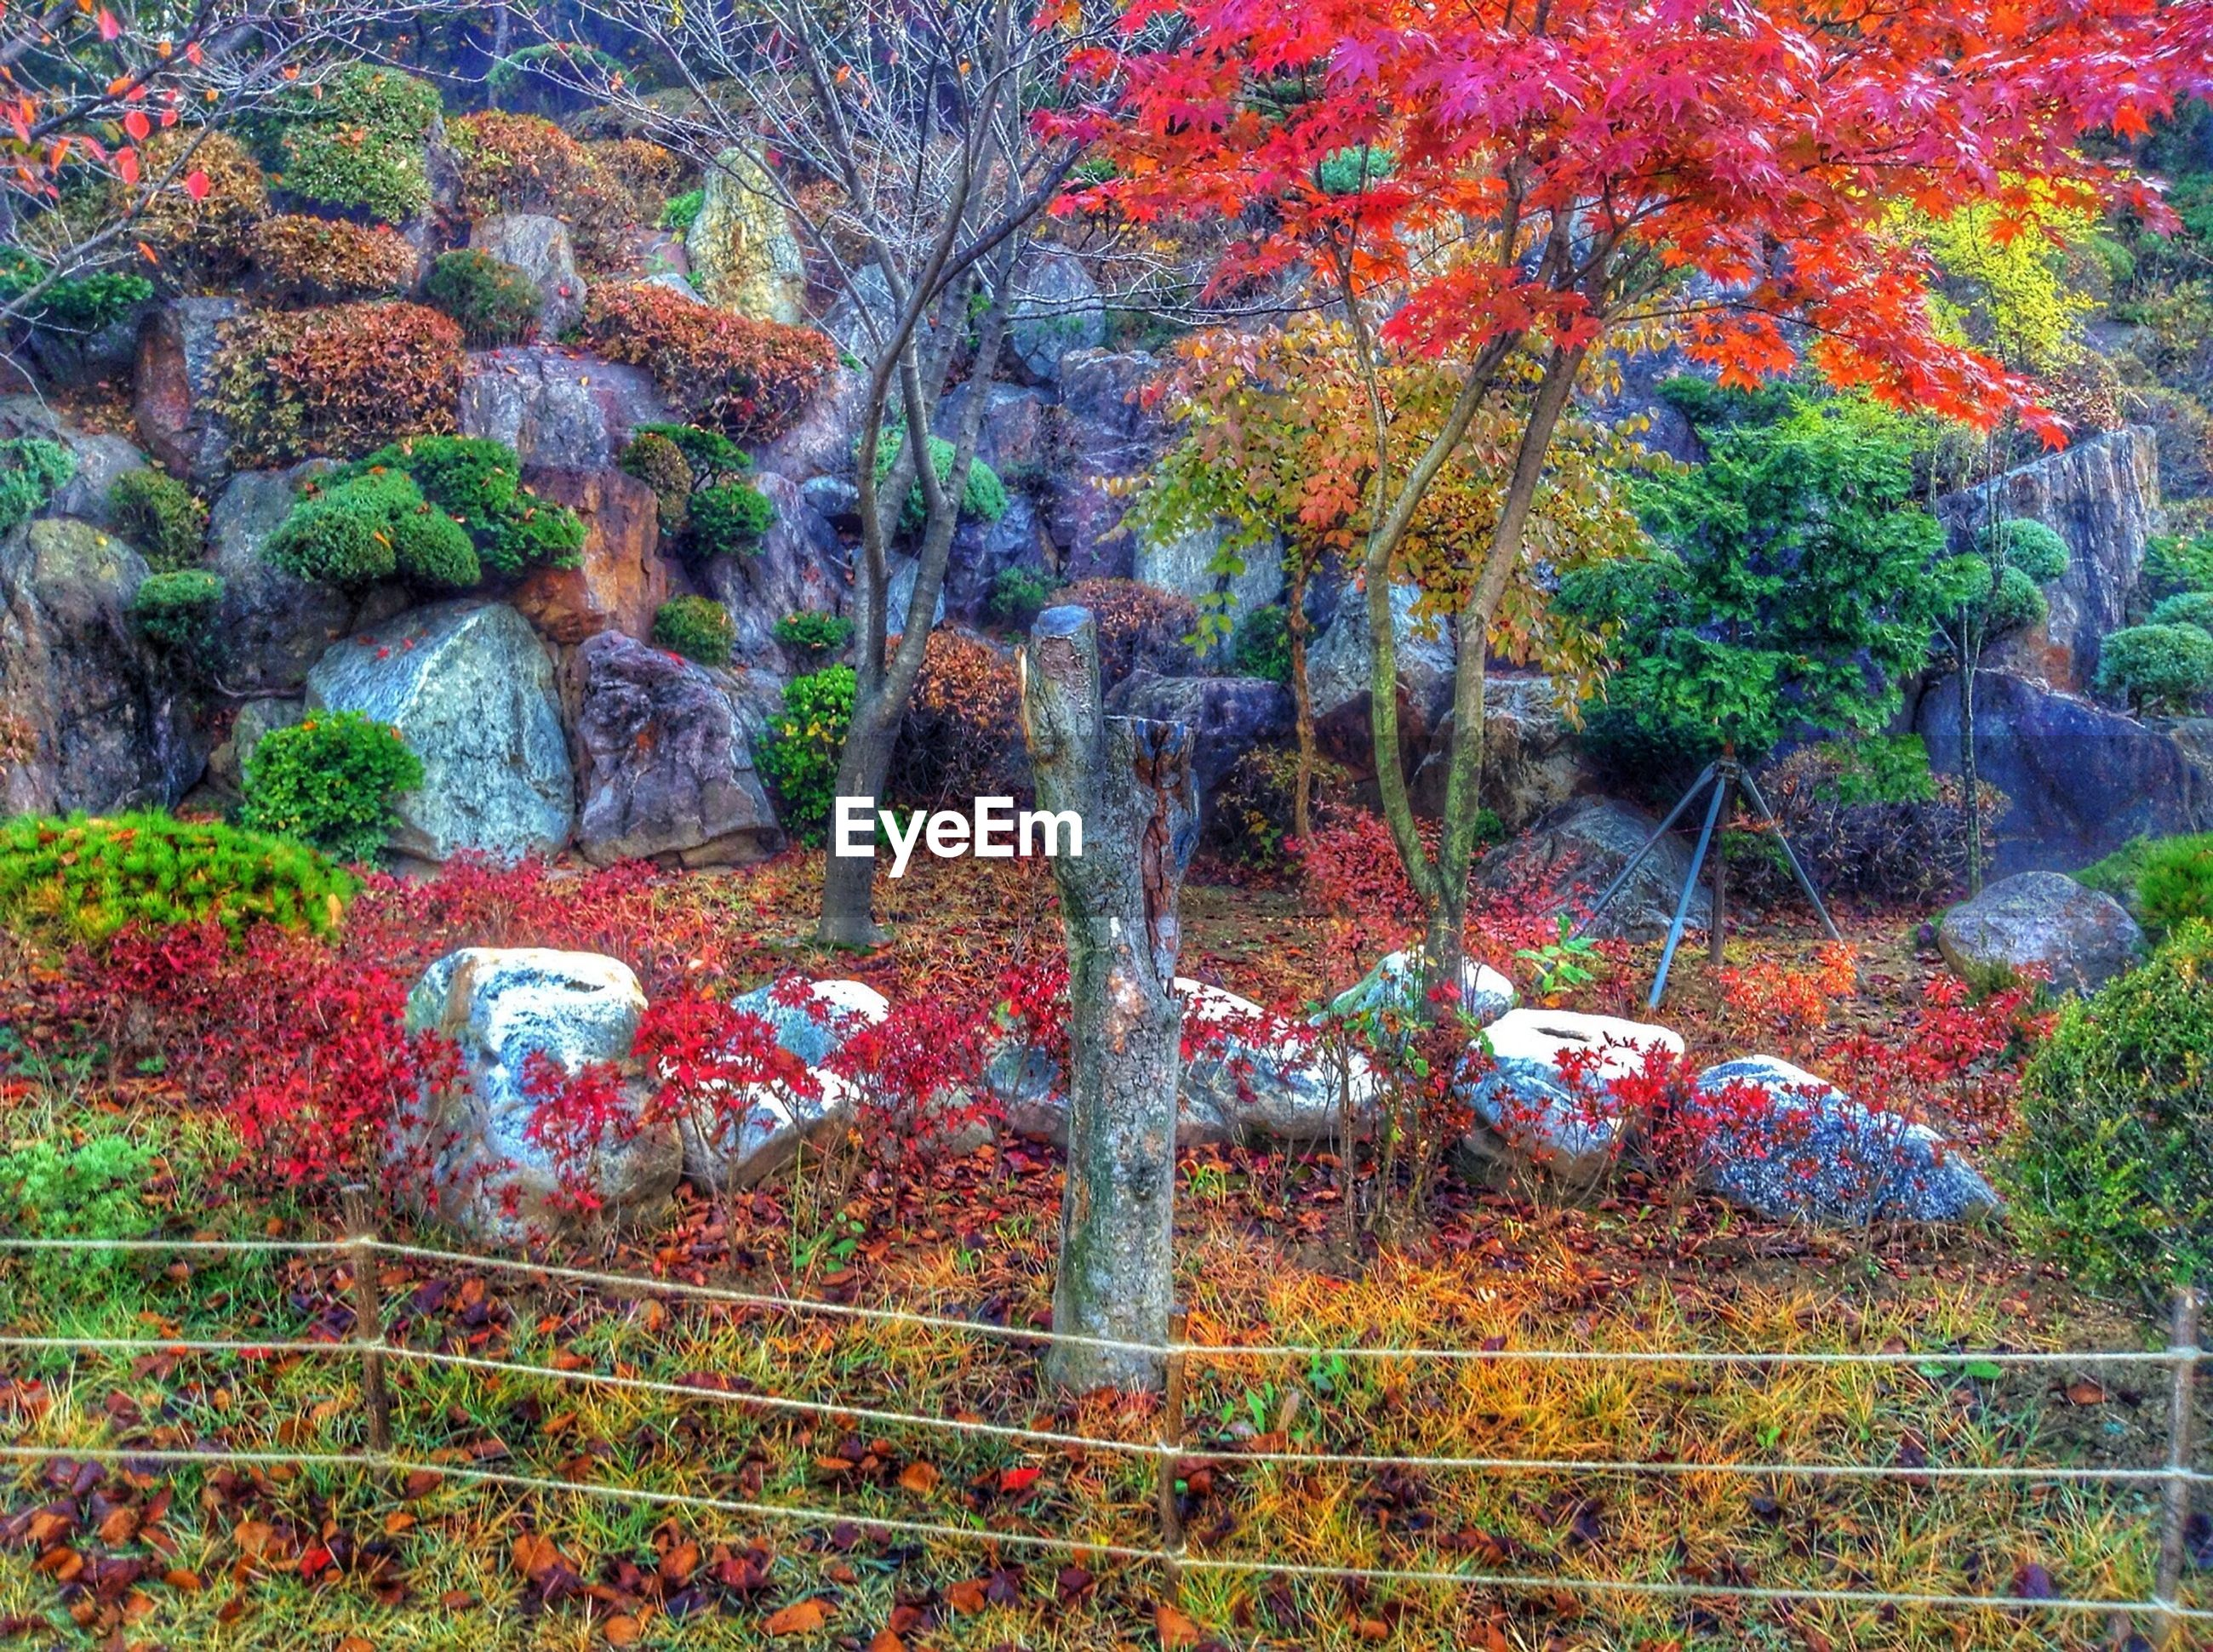 tree, growth, tranquility, nature, beauty in nature, plant, autumn, forest, tranquil scene, park - man made space, scenics, tree trunk, change, branch, day, outdoors, no people, growing, rock - object, fence